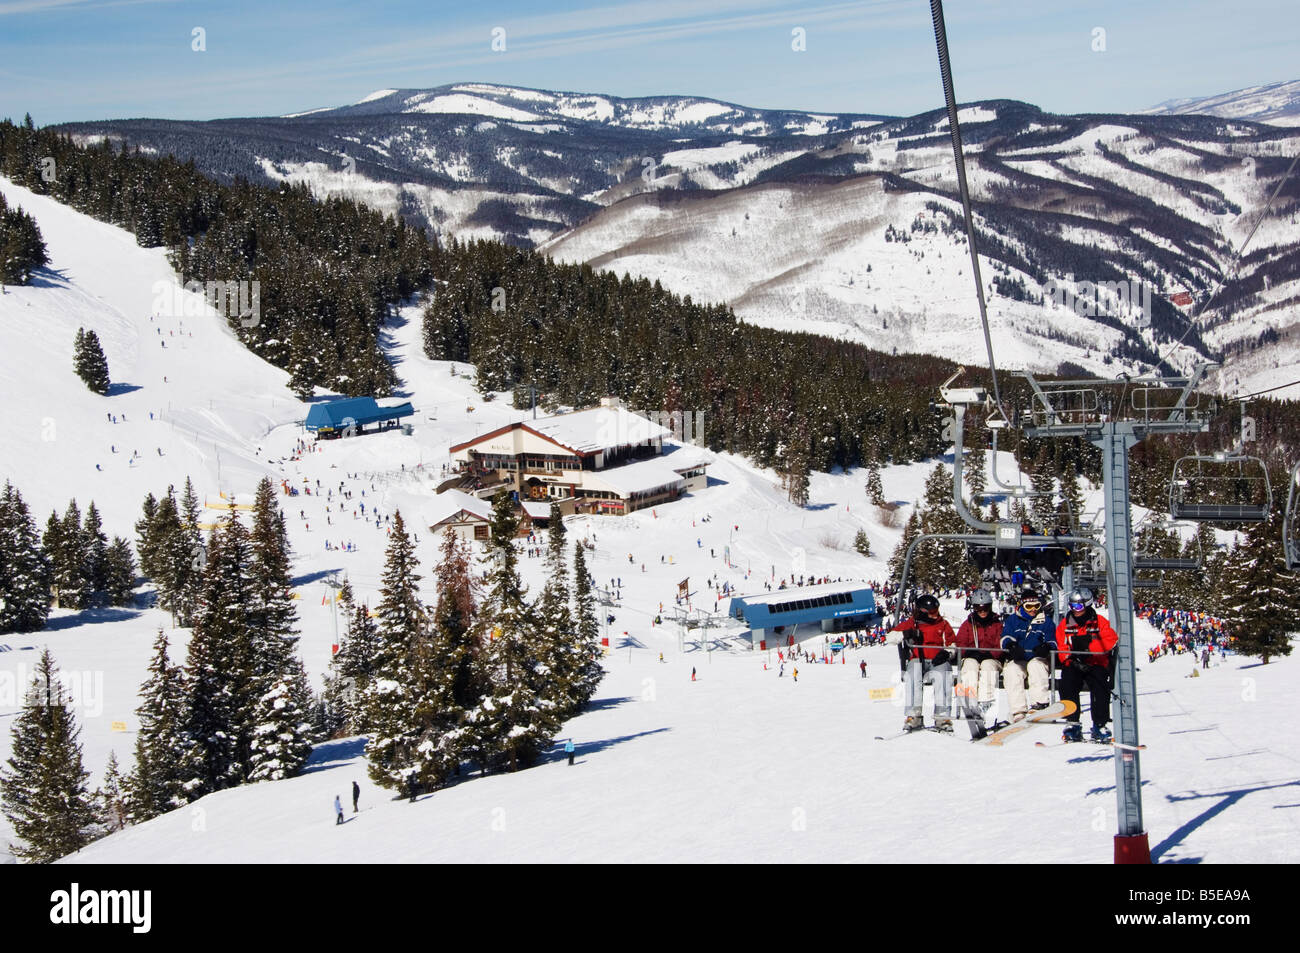 Skiers being carried on a chair lift to the back bowls of Vail ski resort, Vail, Colorado, USA, North America - Stock Image